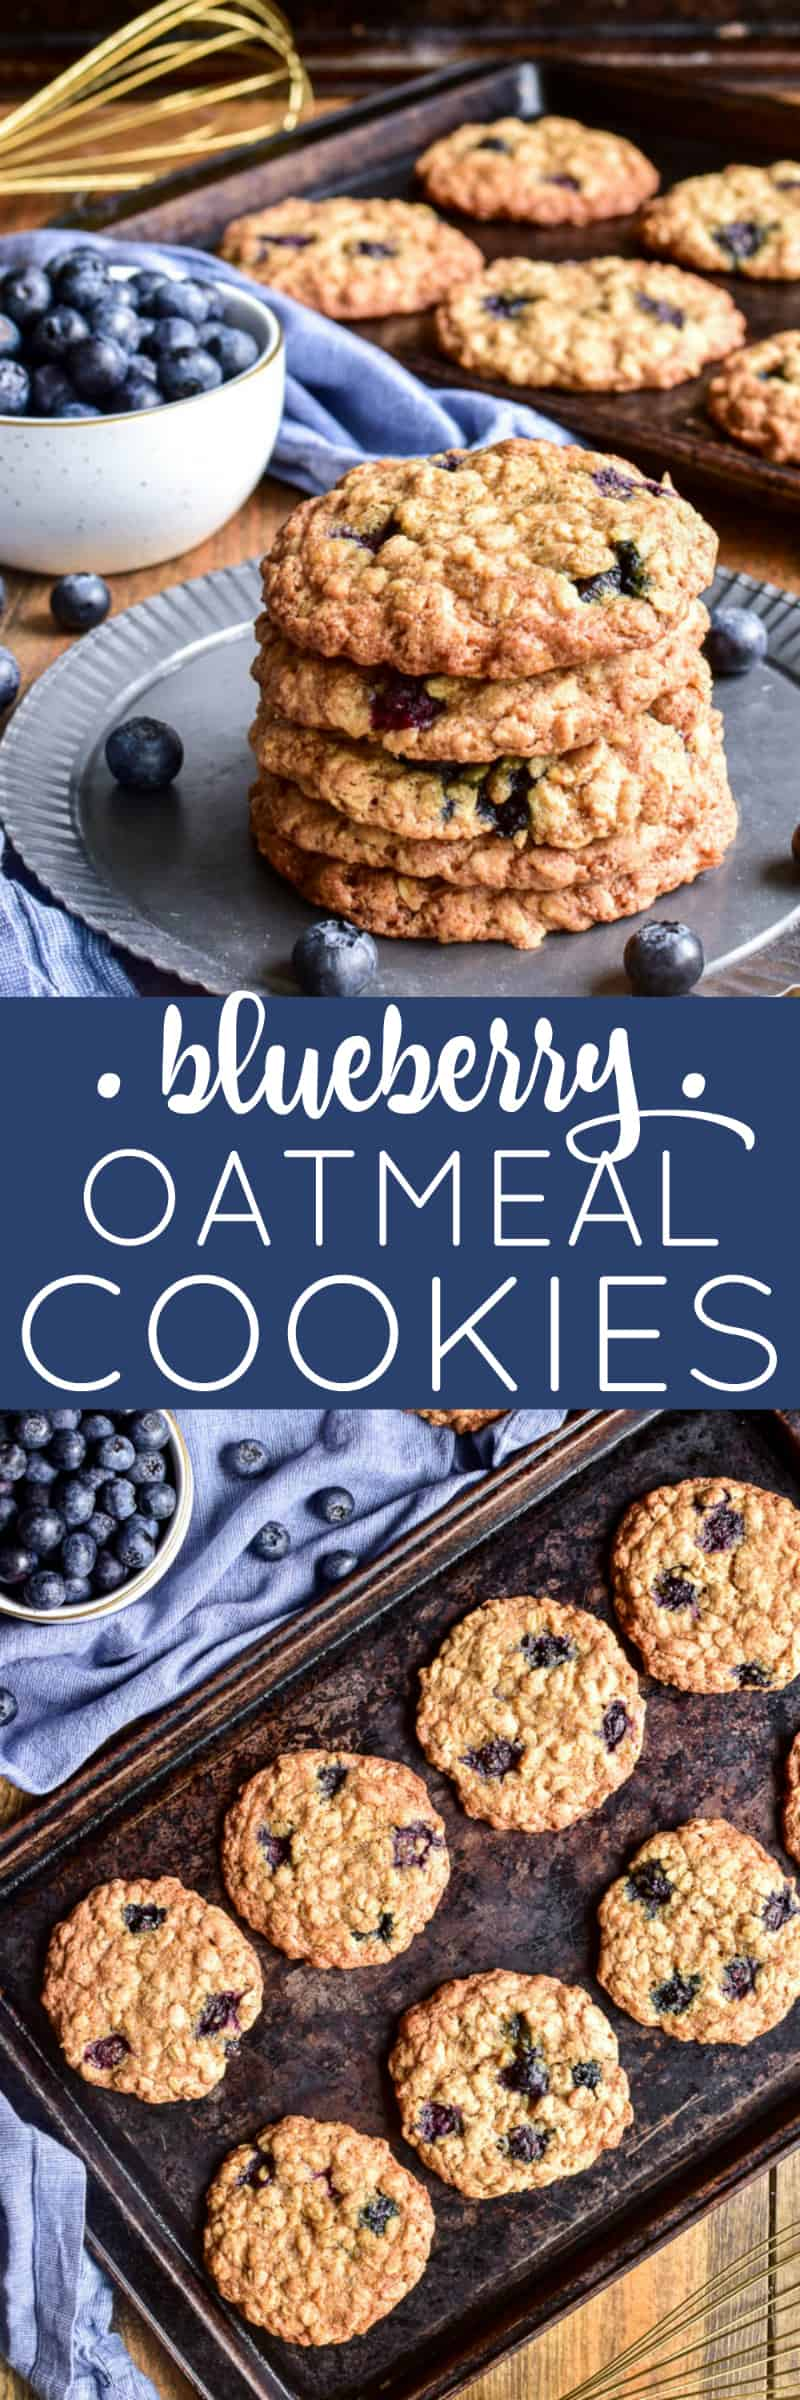 Collage image of Blueberry Oatmeal Cookies